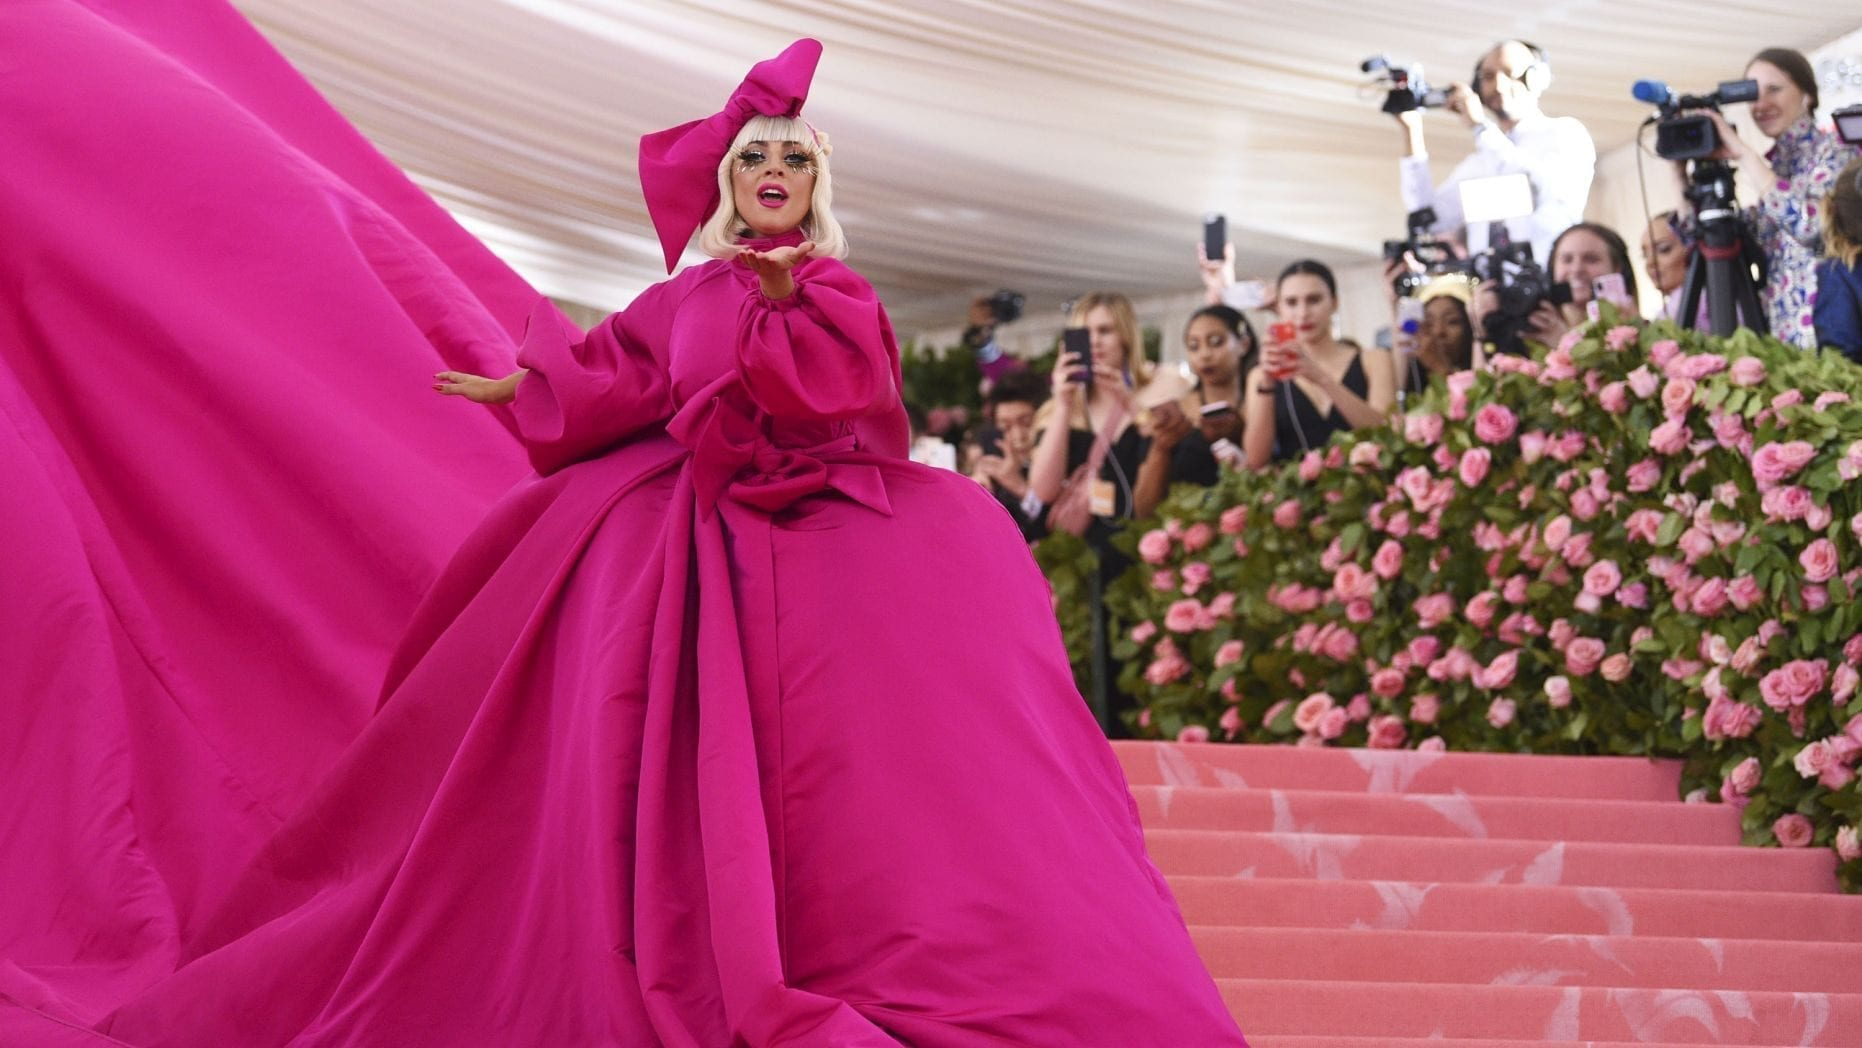 Lady Gaga's AMAZING entrance into the Met Gala 2019